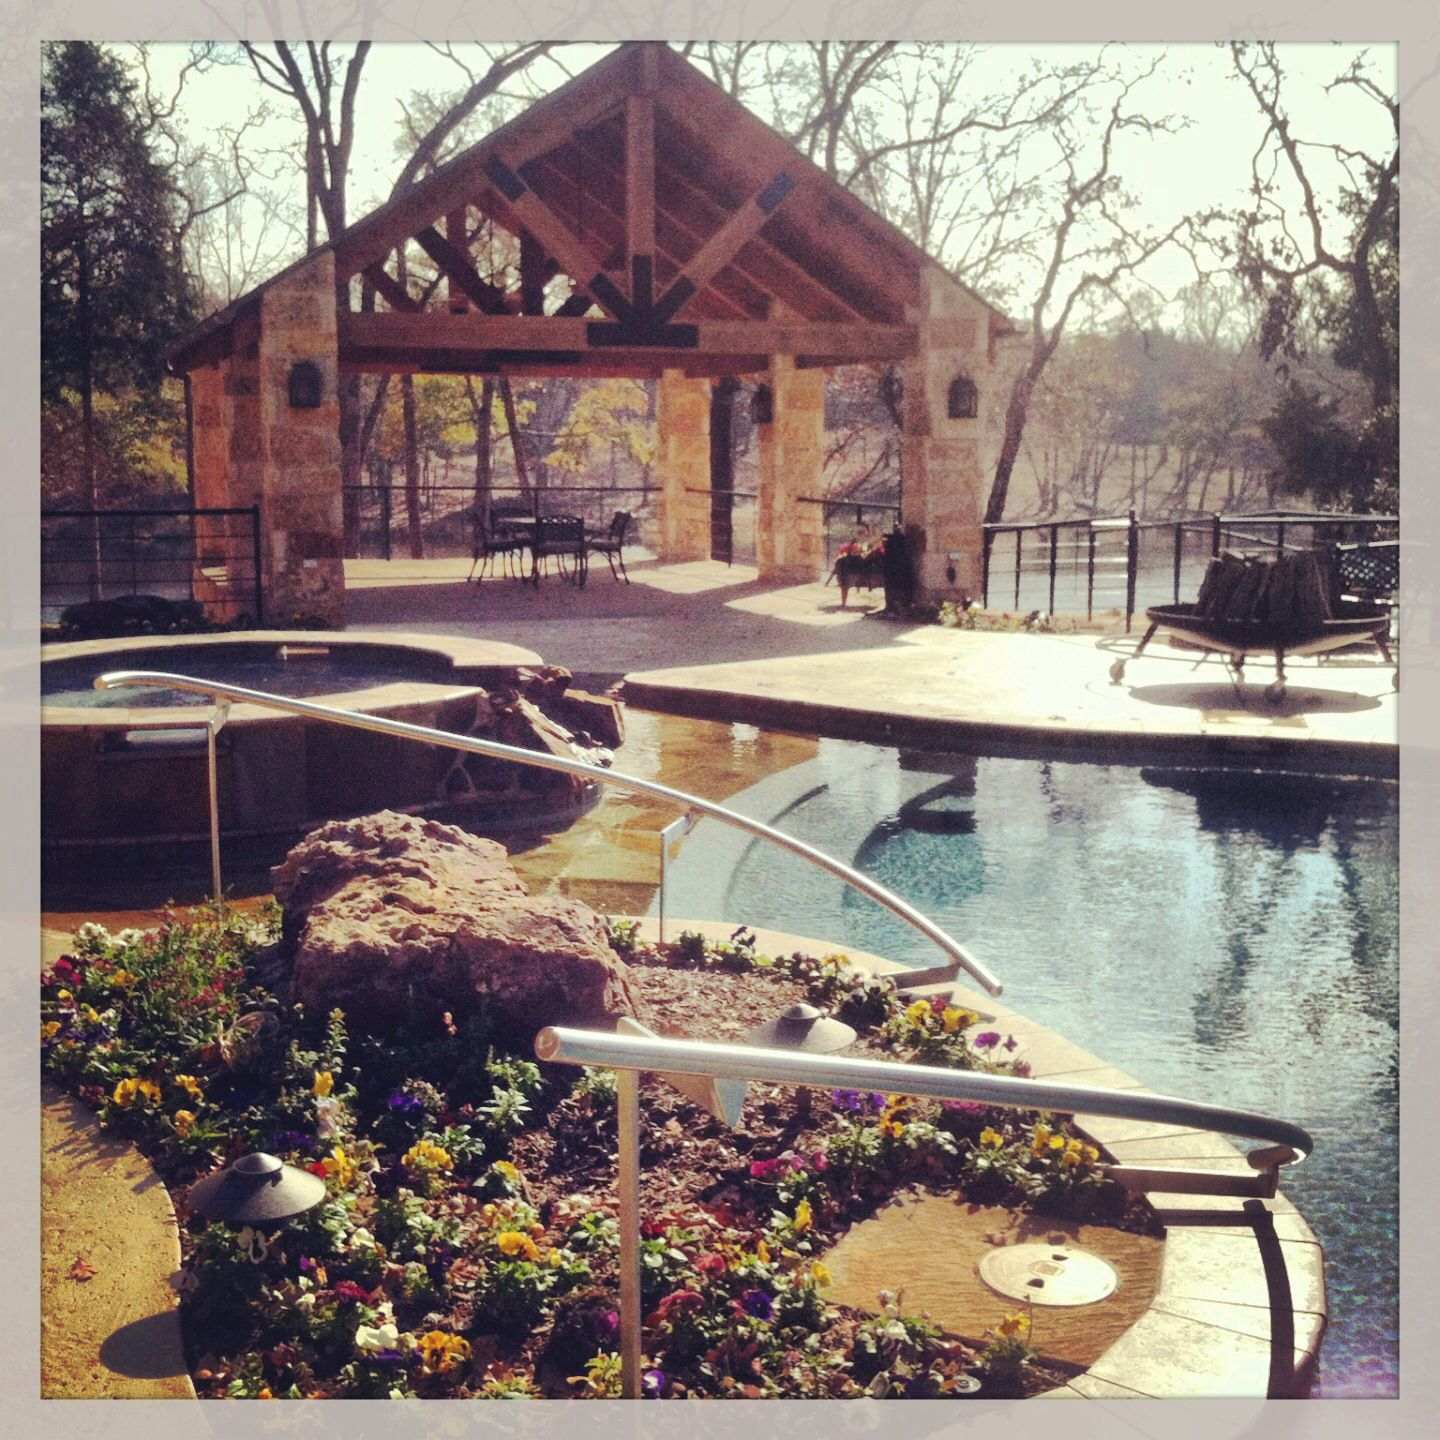 Custom Designed And Constructed Radius Pool In East Texas By Preferred Pools Inc Stainless